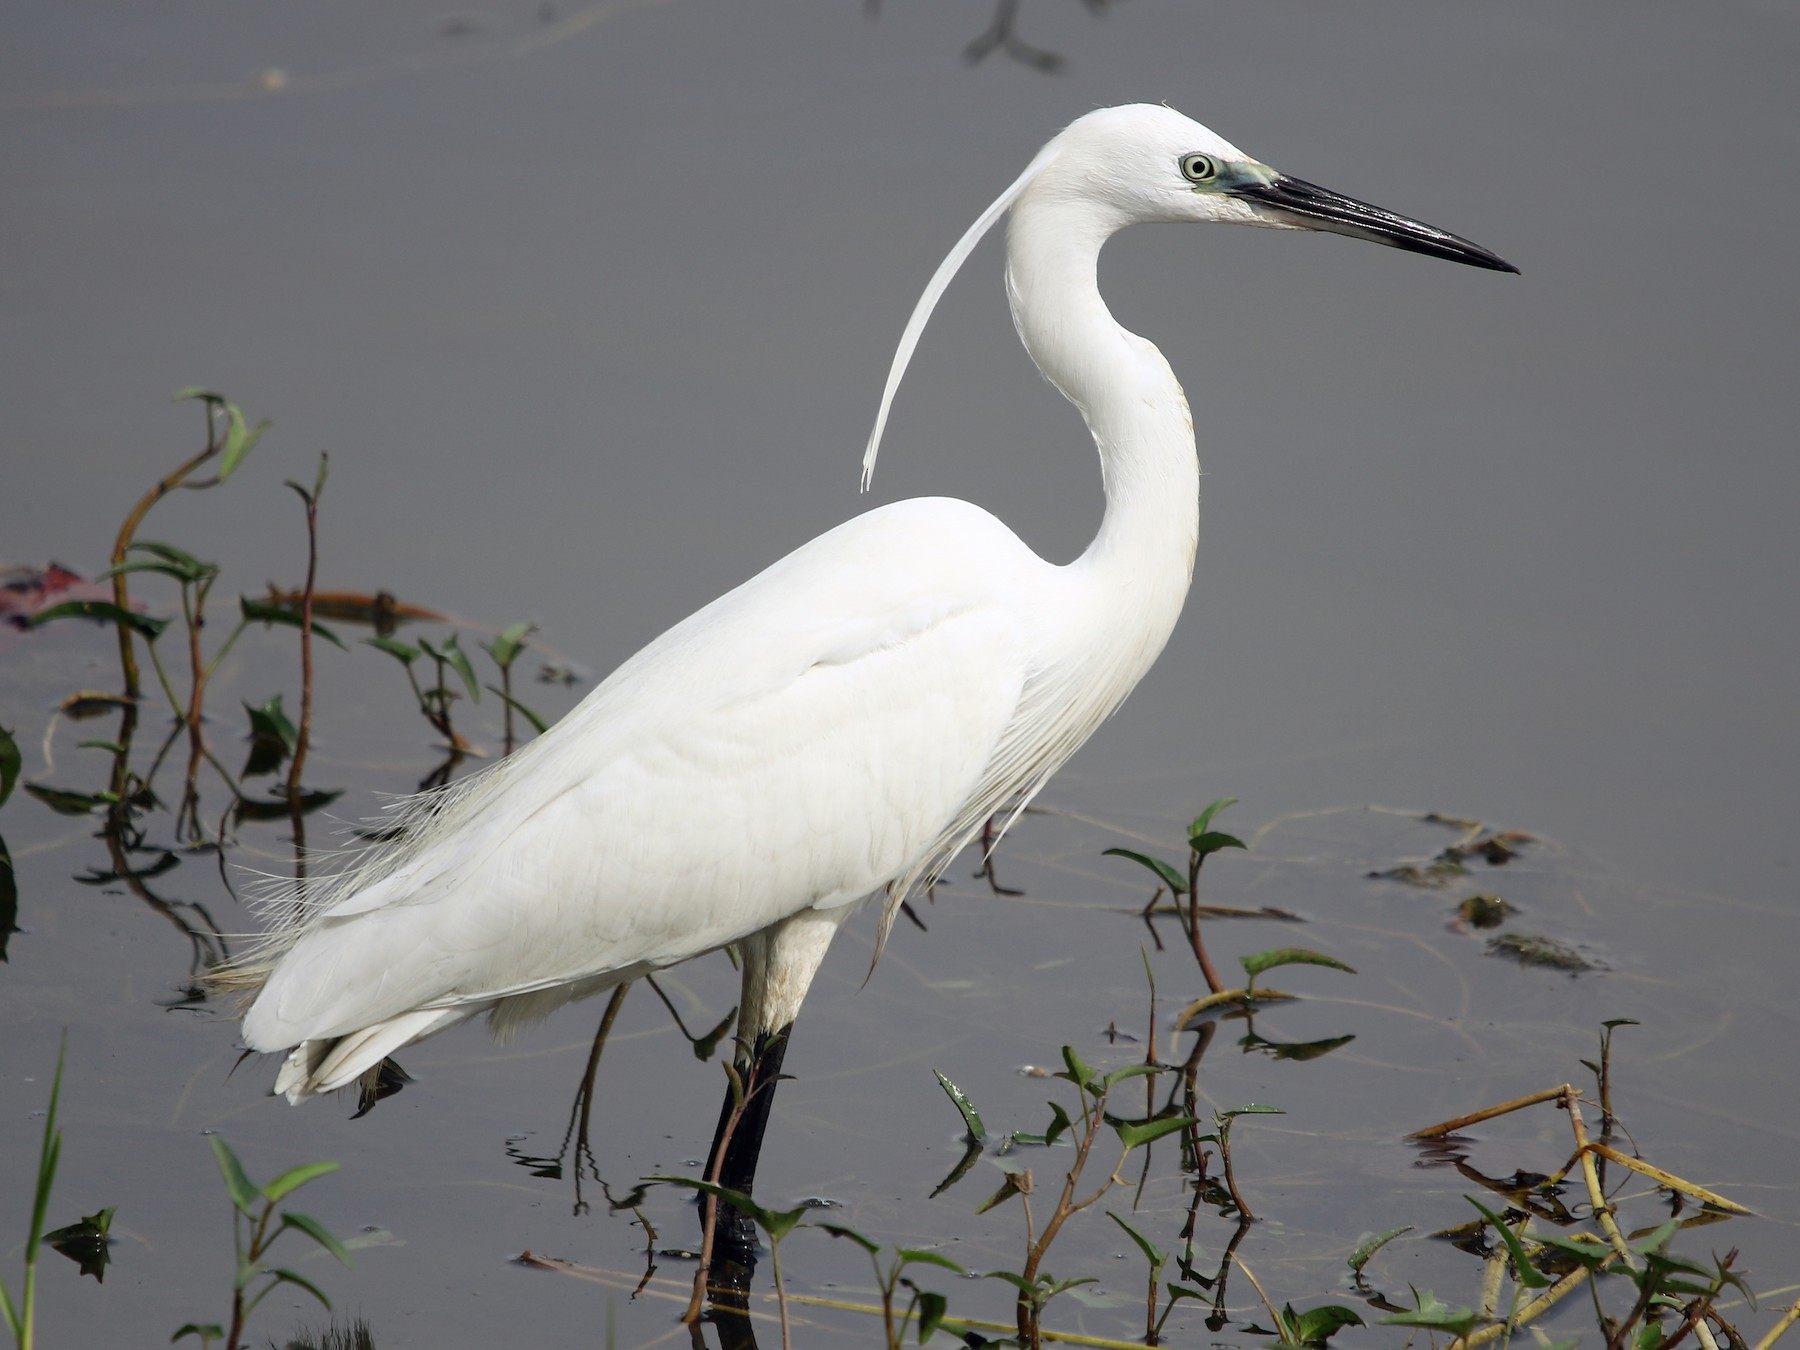 Little Egret - Bhaarat Vyas